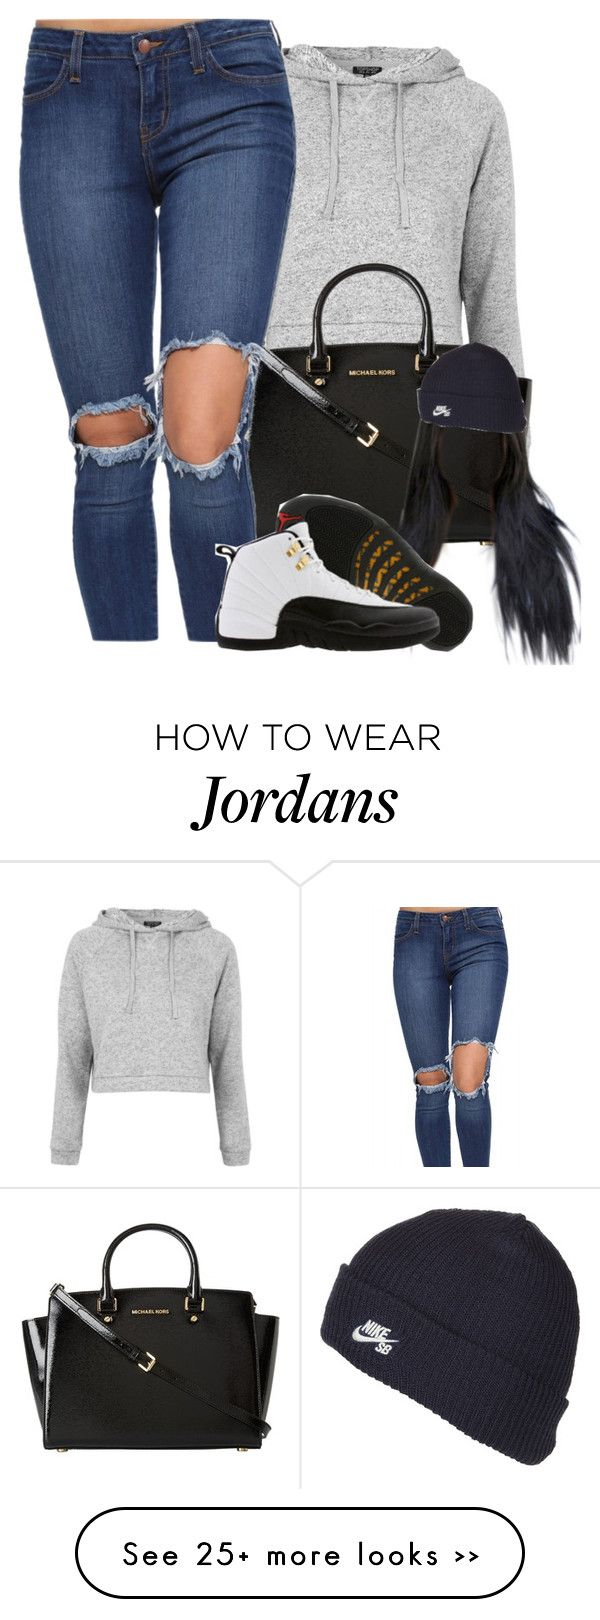 columbia sunglasses  quot Untitled  342 quot  by miyah dauneya on Polyvore featuring Topshop  MICHAEL Michael Kors  TAXI and NIKE